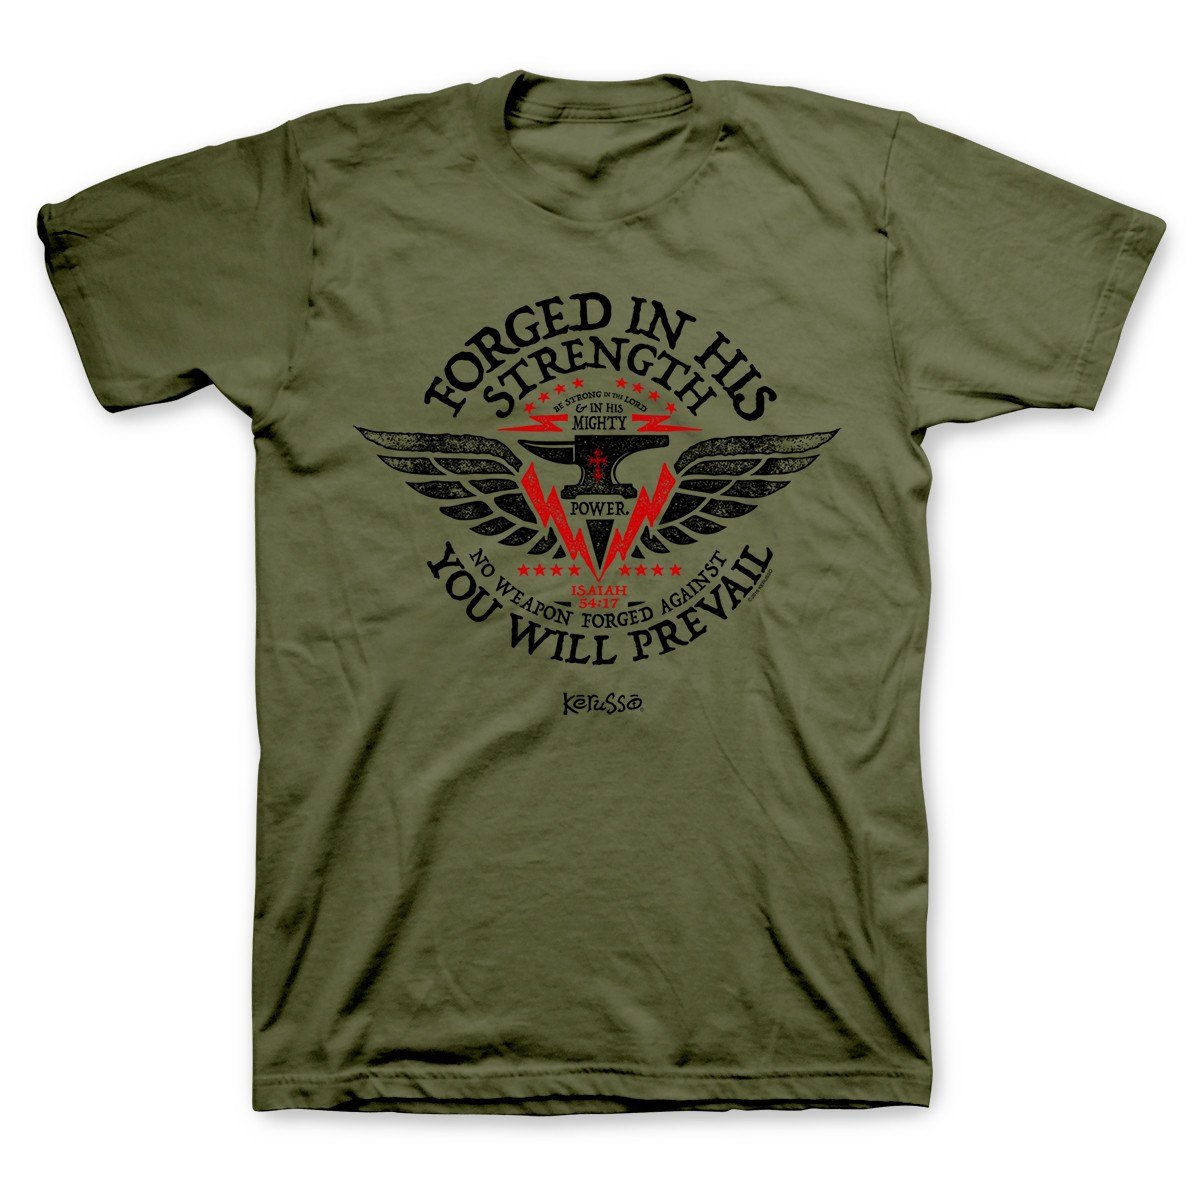 Forged in His Strength, Tee, 3X, Olive - Christian Fashion Gifts